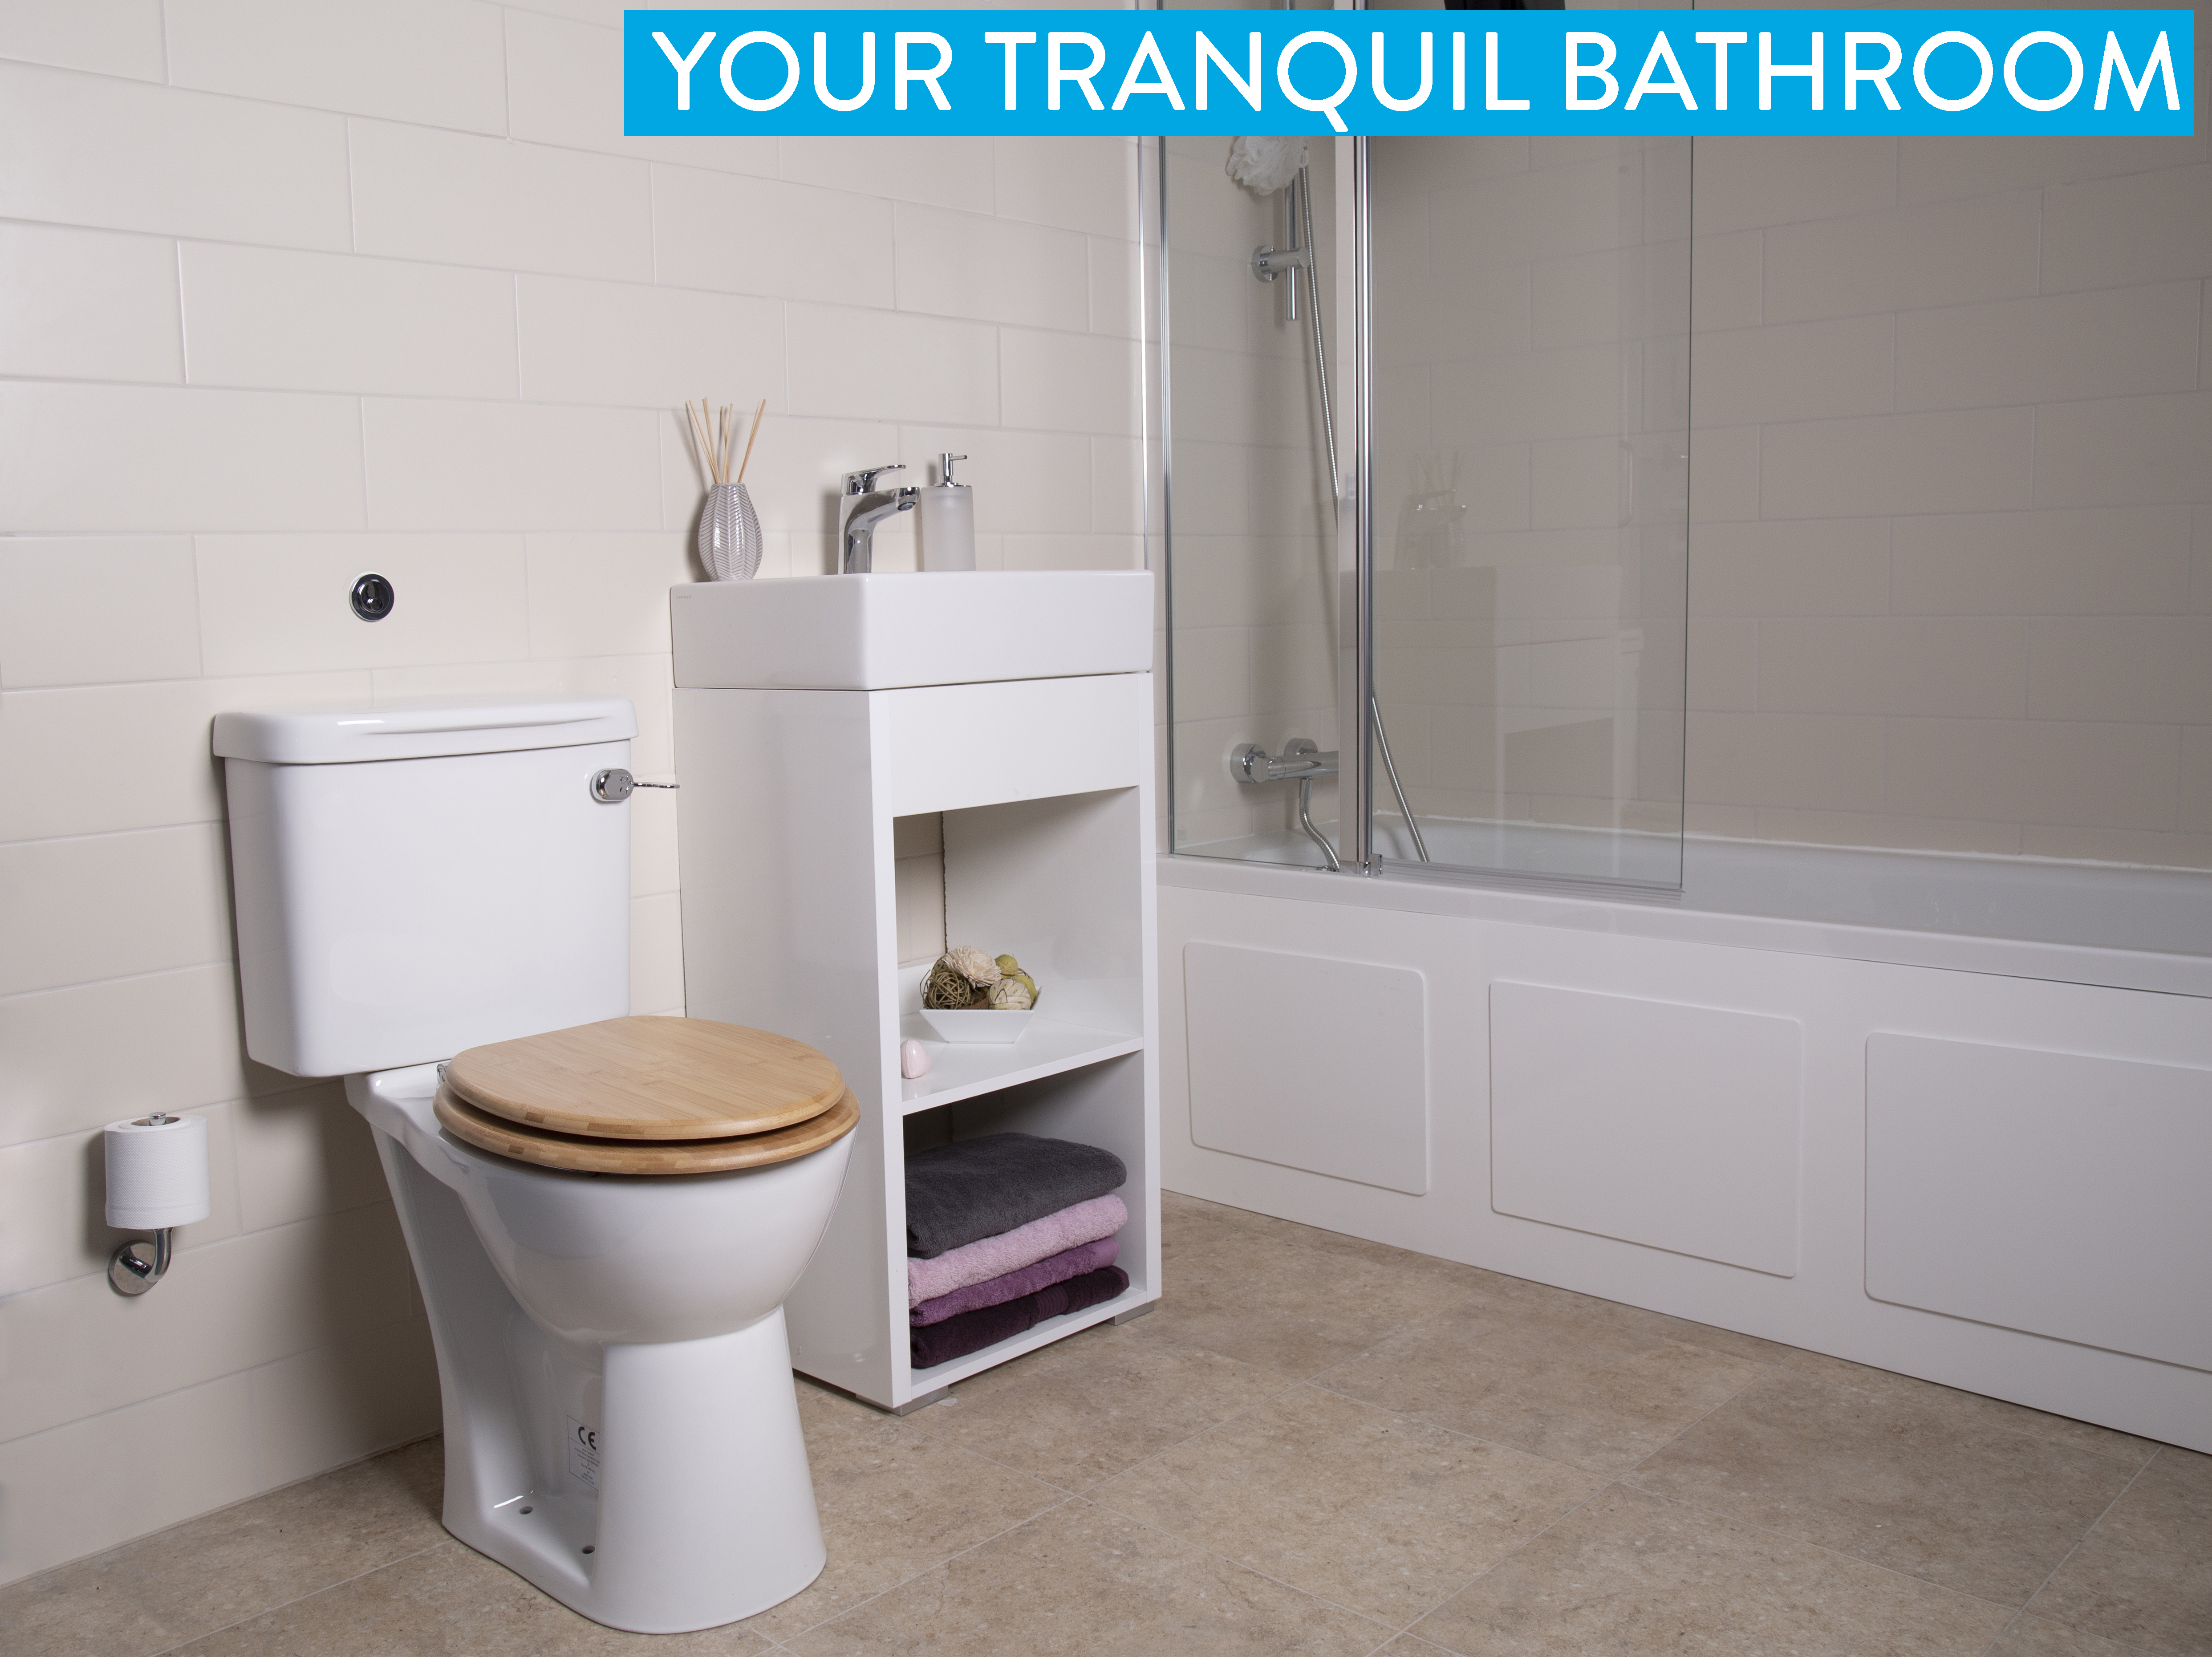 Creating a calm and tranquil bathroom